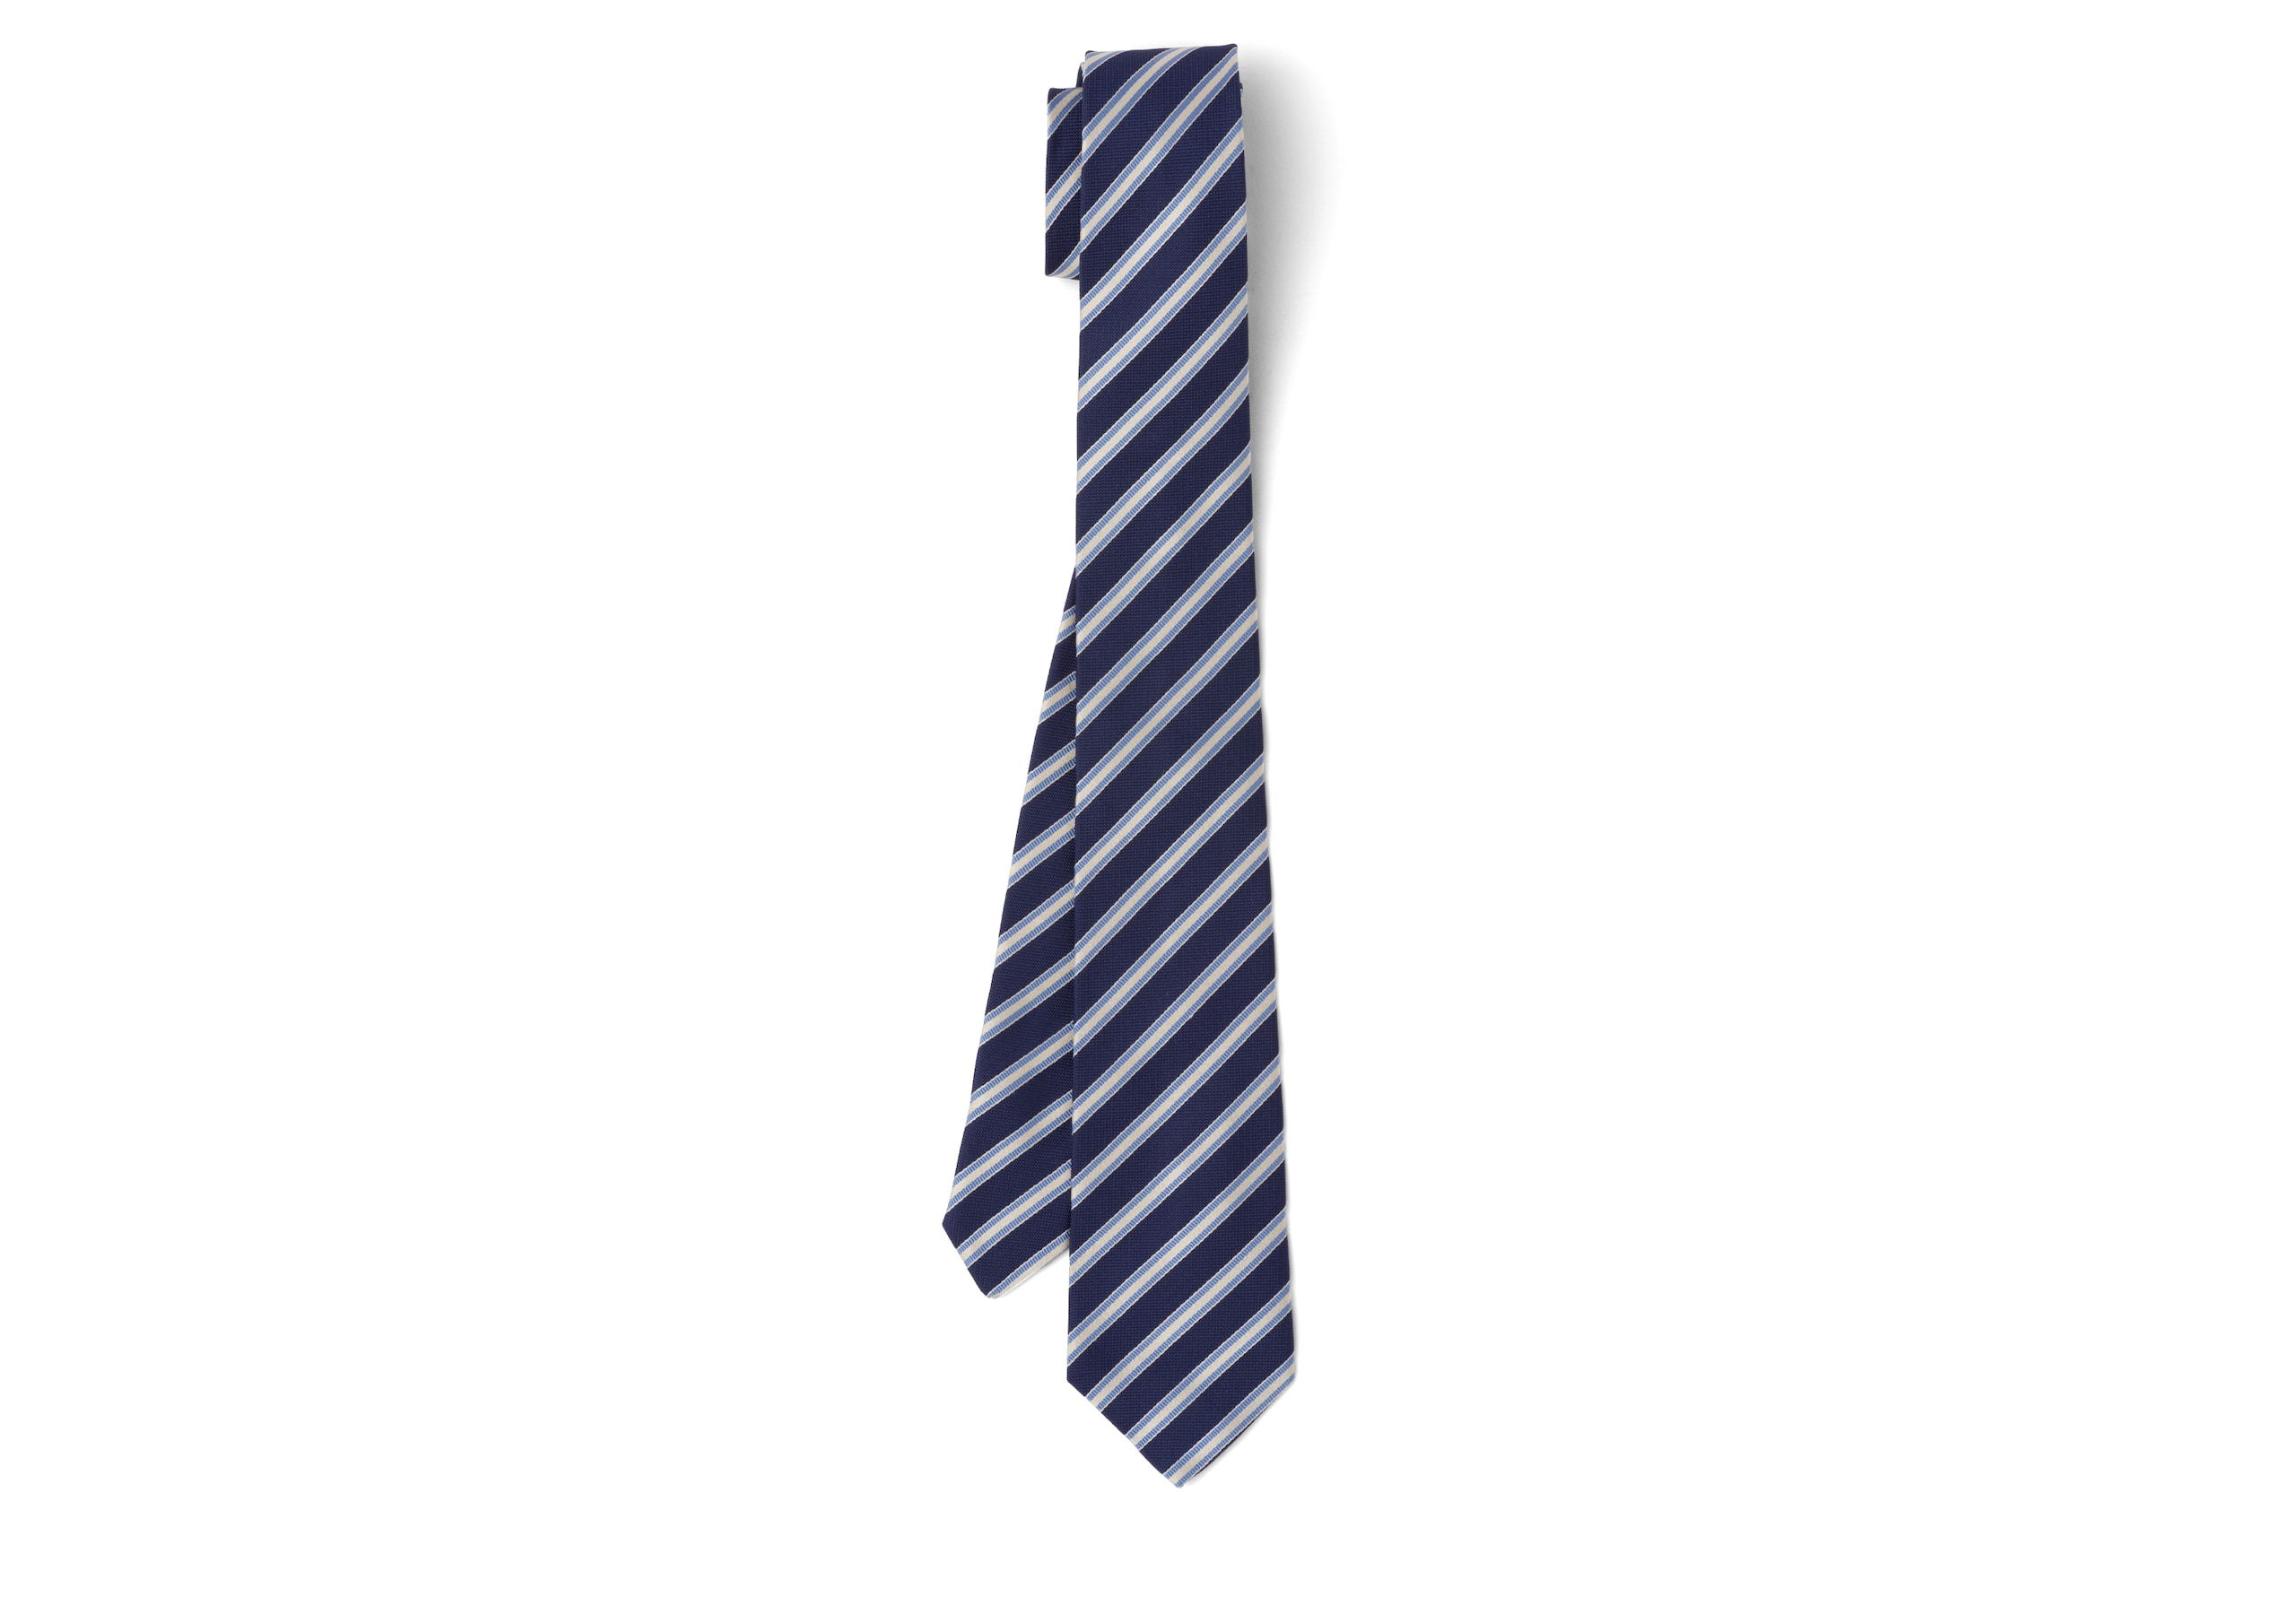 Regimental tie Church's Regimental Tie Blue